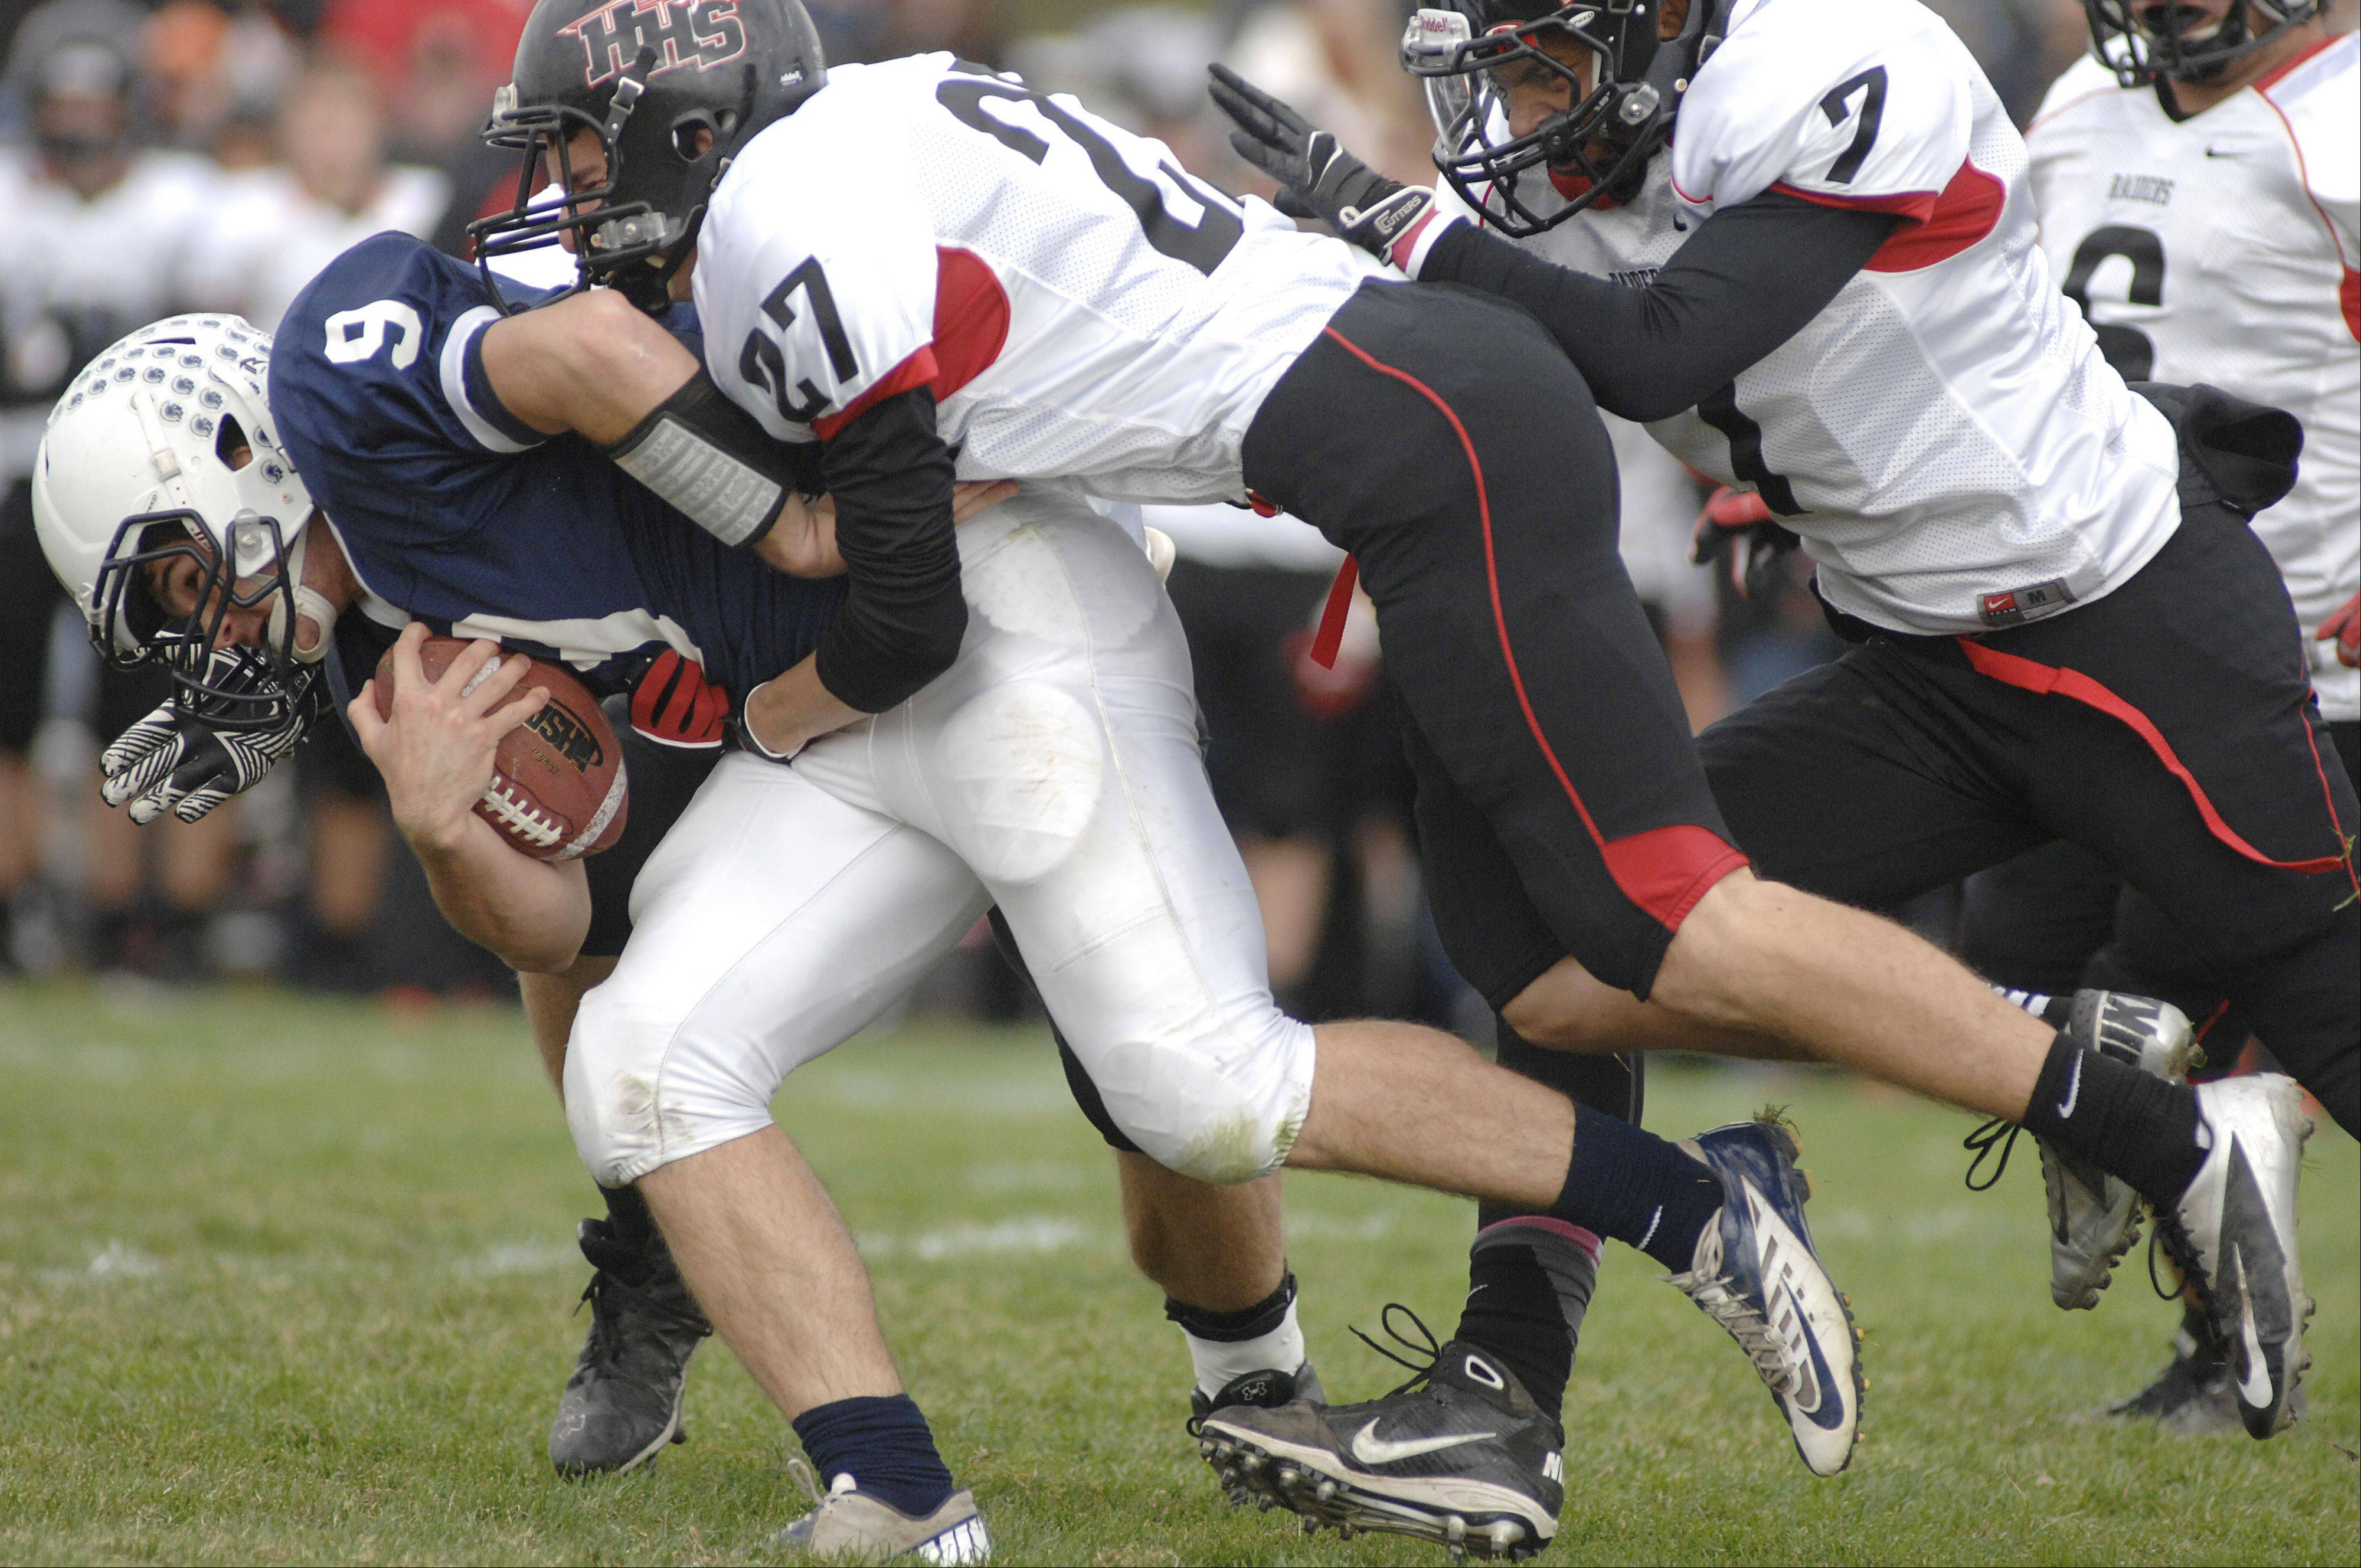 Cary-Grove's Wuinn Baker tries to shake off Huntley's Josh Sepsey and Damario Hughes in the second quarter Saturday.